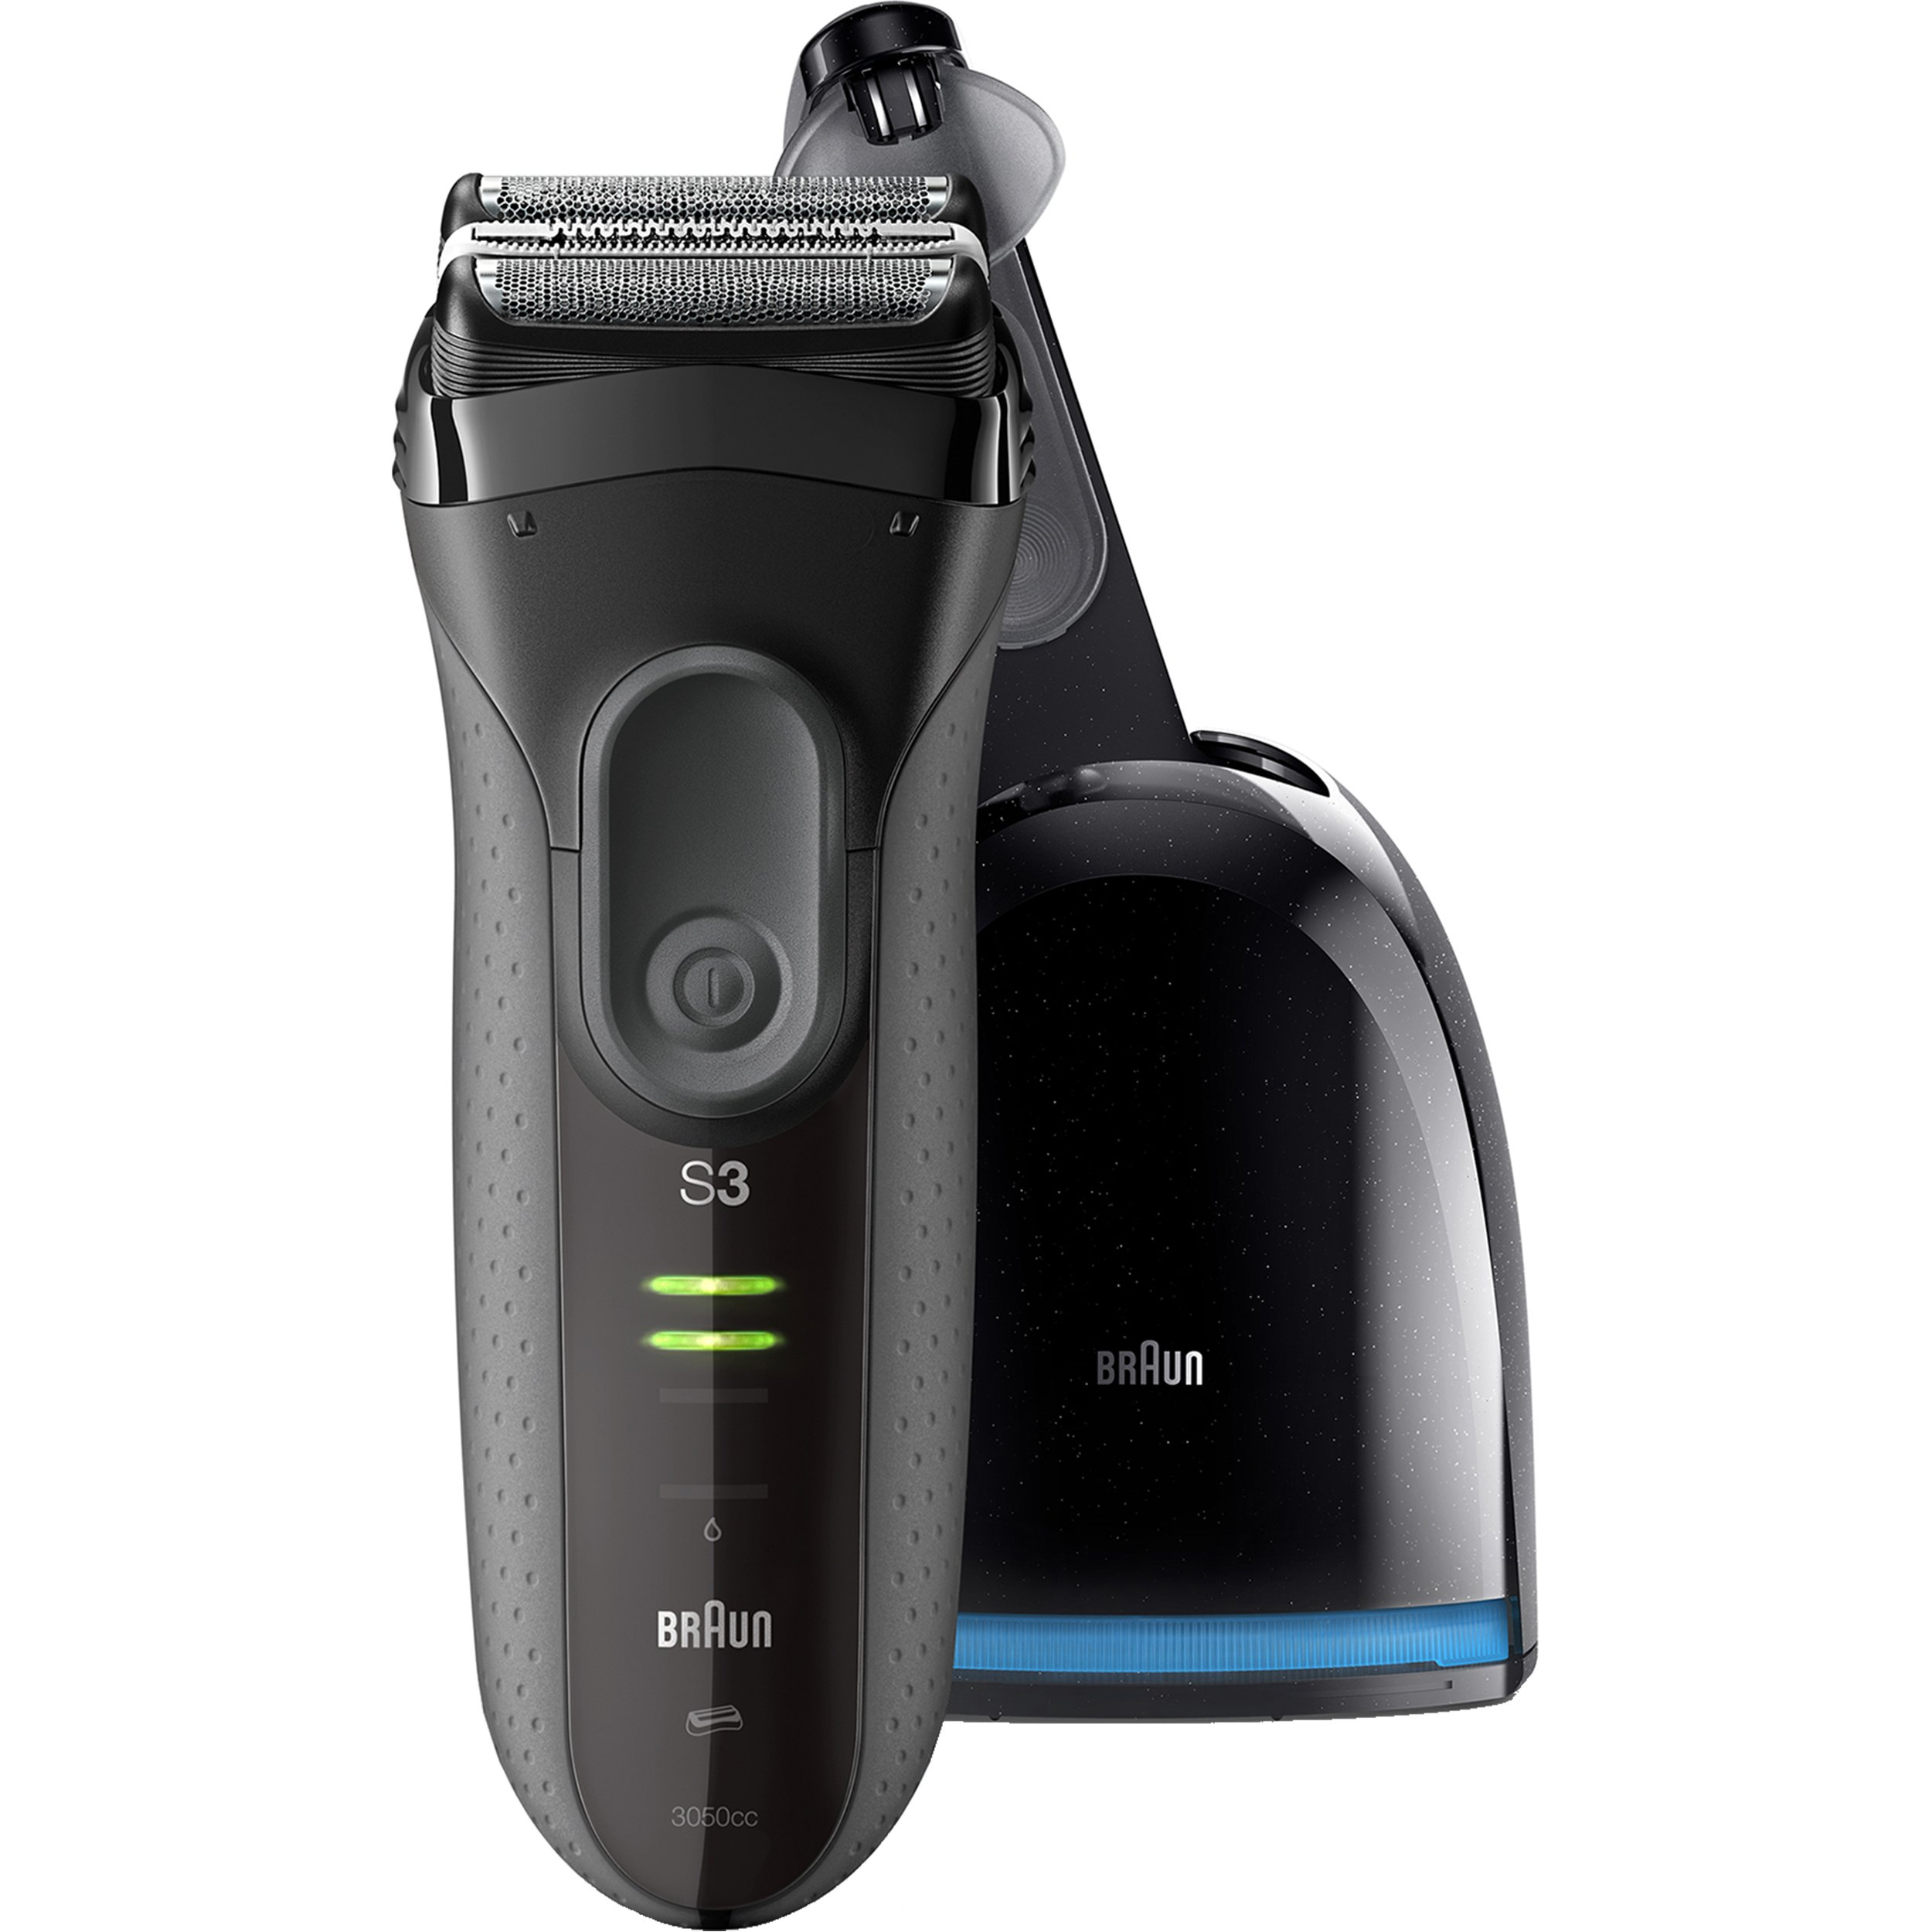 Braun Series 3 ProSkin 3050cc Men's Electric Foil Shaver/Rechargeable Electric Razor, and Clean & Charge Station, Black by Braun